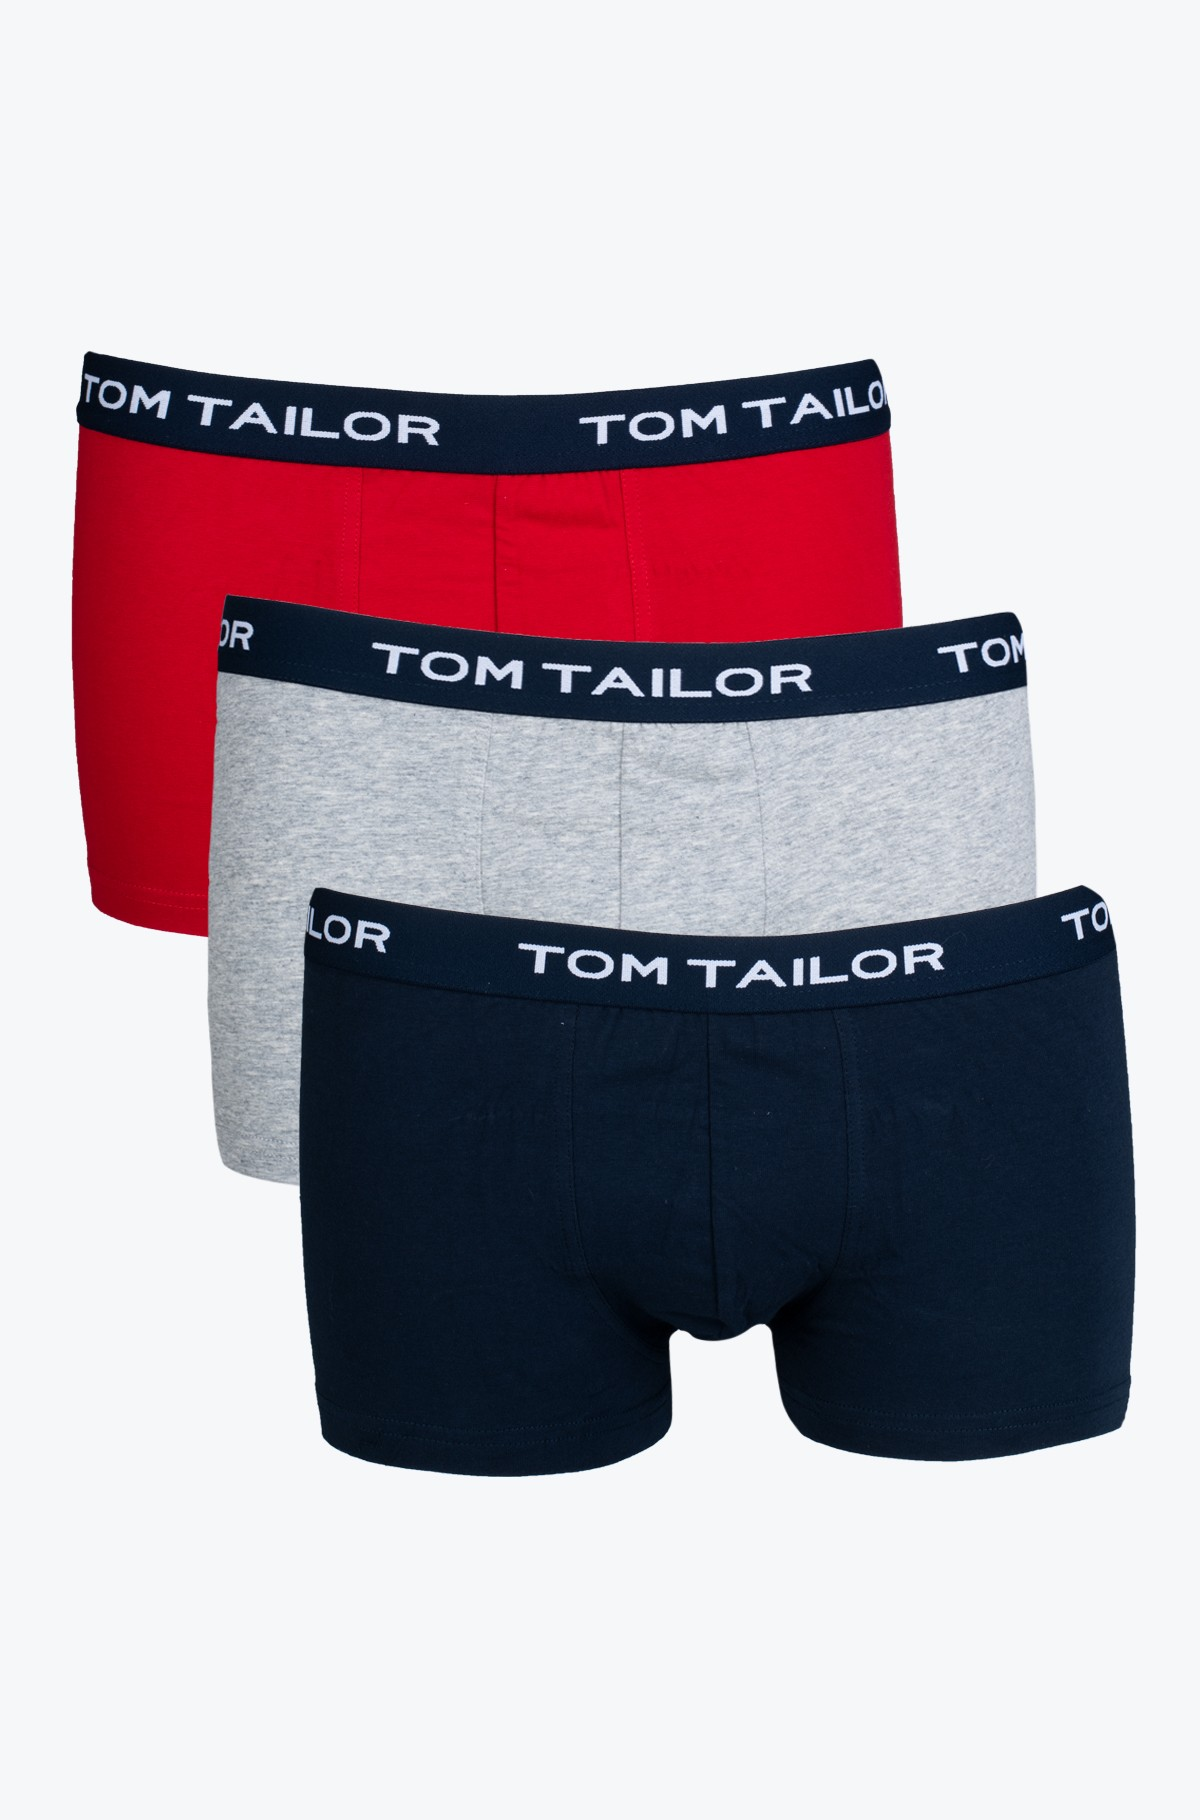 Three pairs of boxers 70162.00.10-full-1